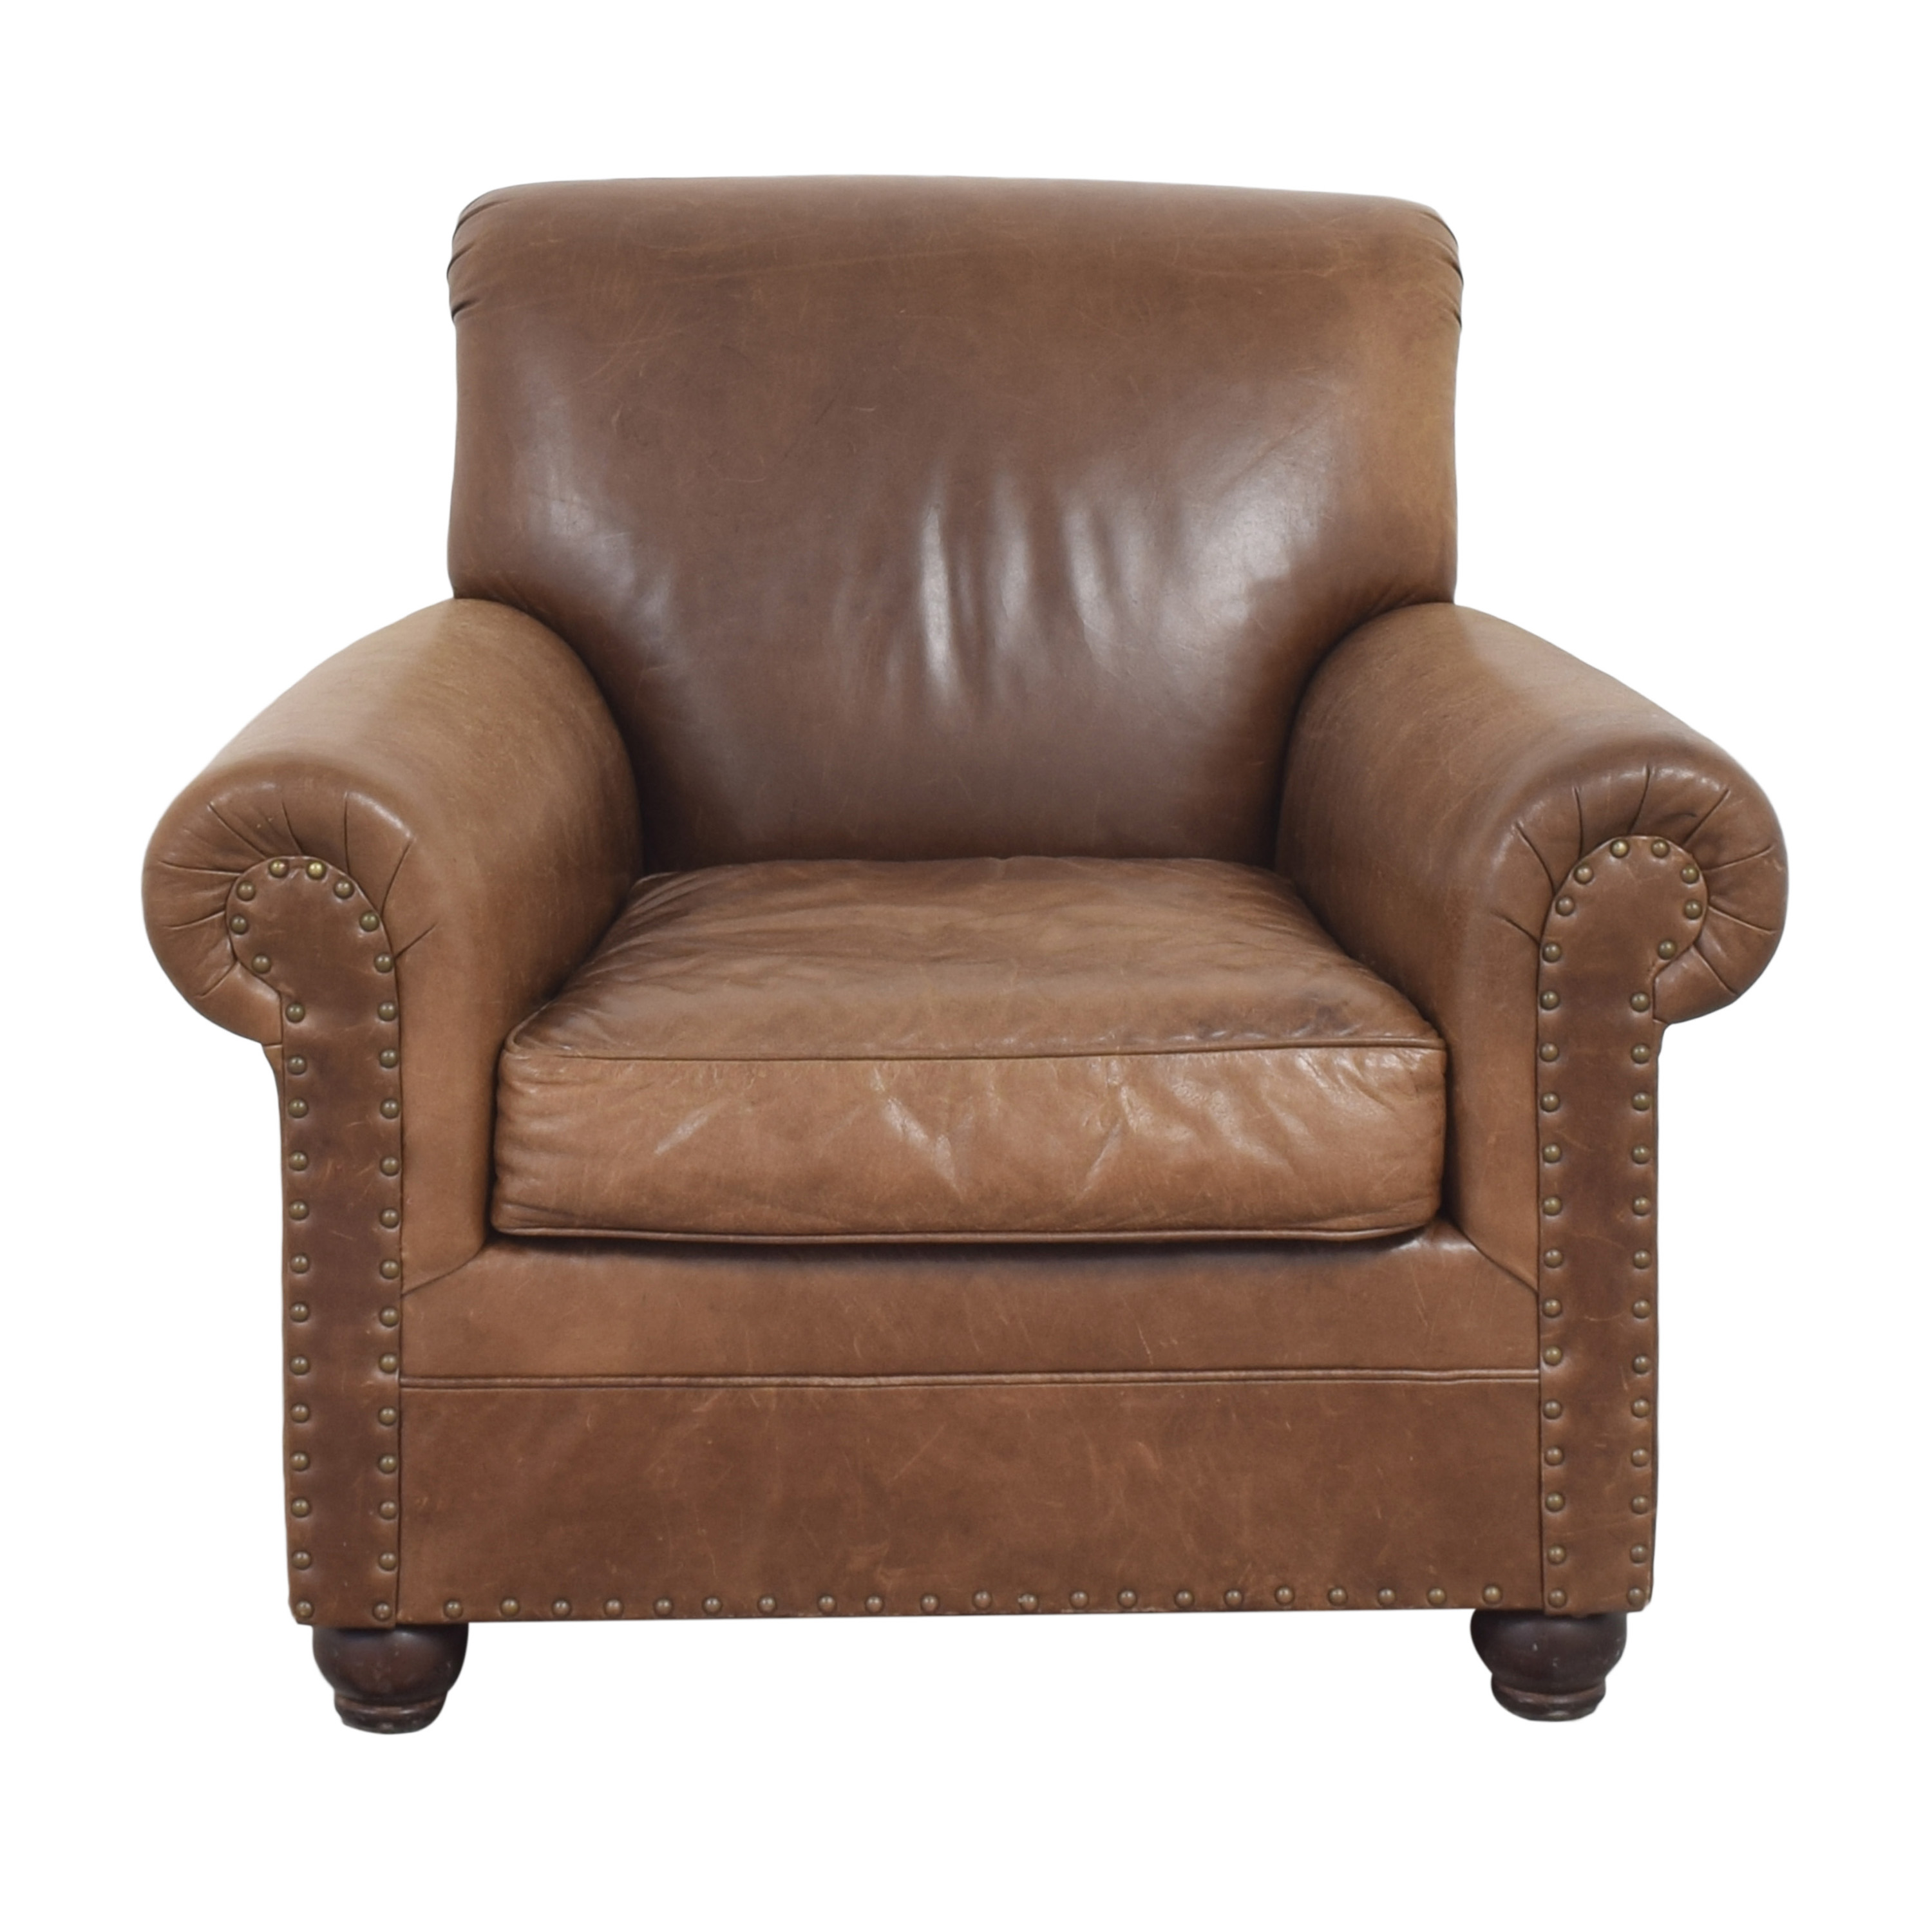 Restoration Hardware Nailhead Trim Armchair sale